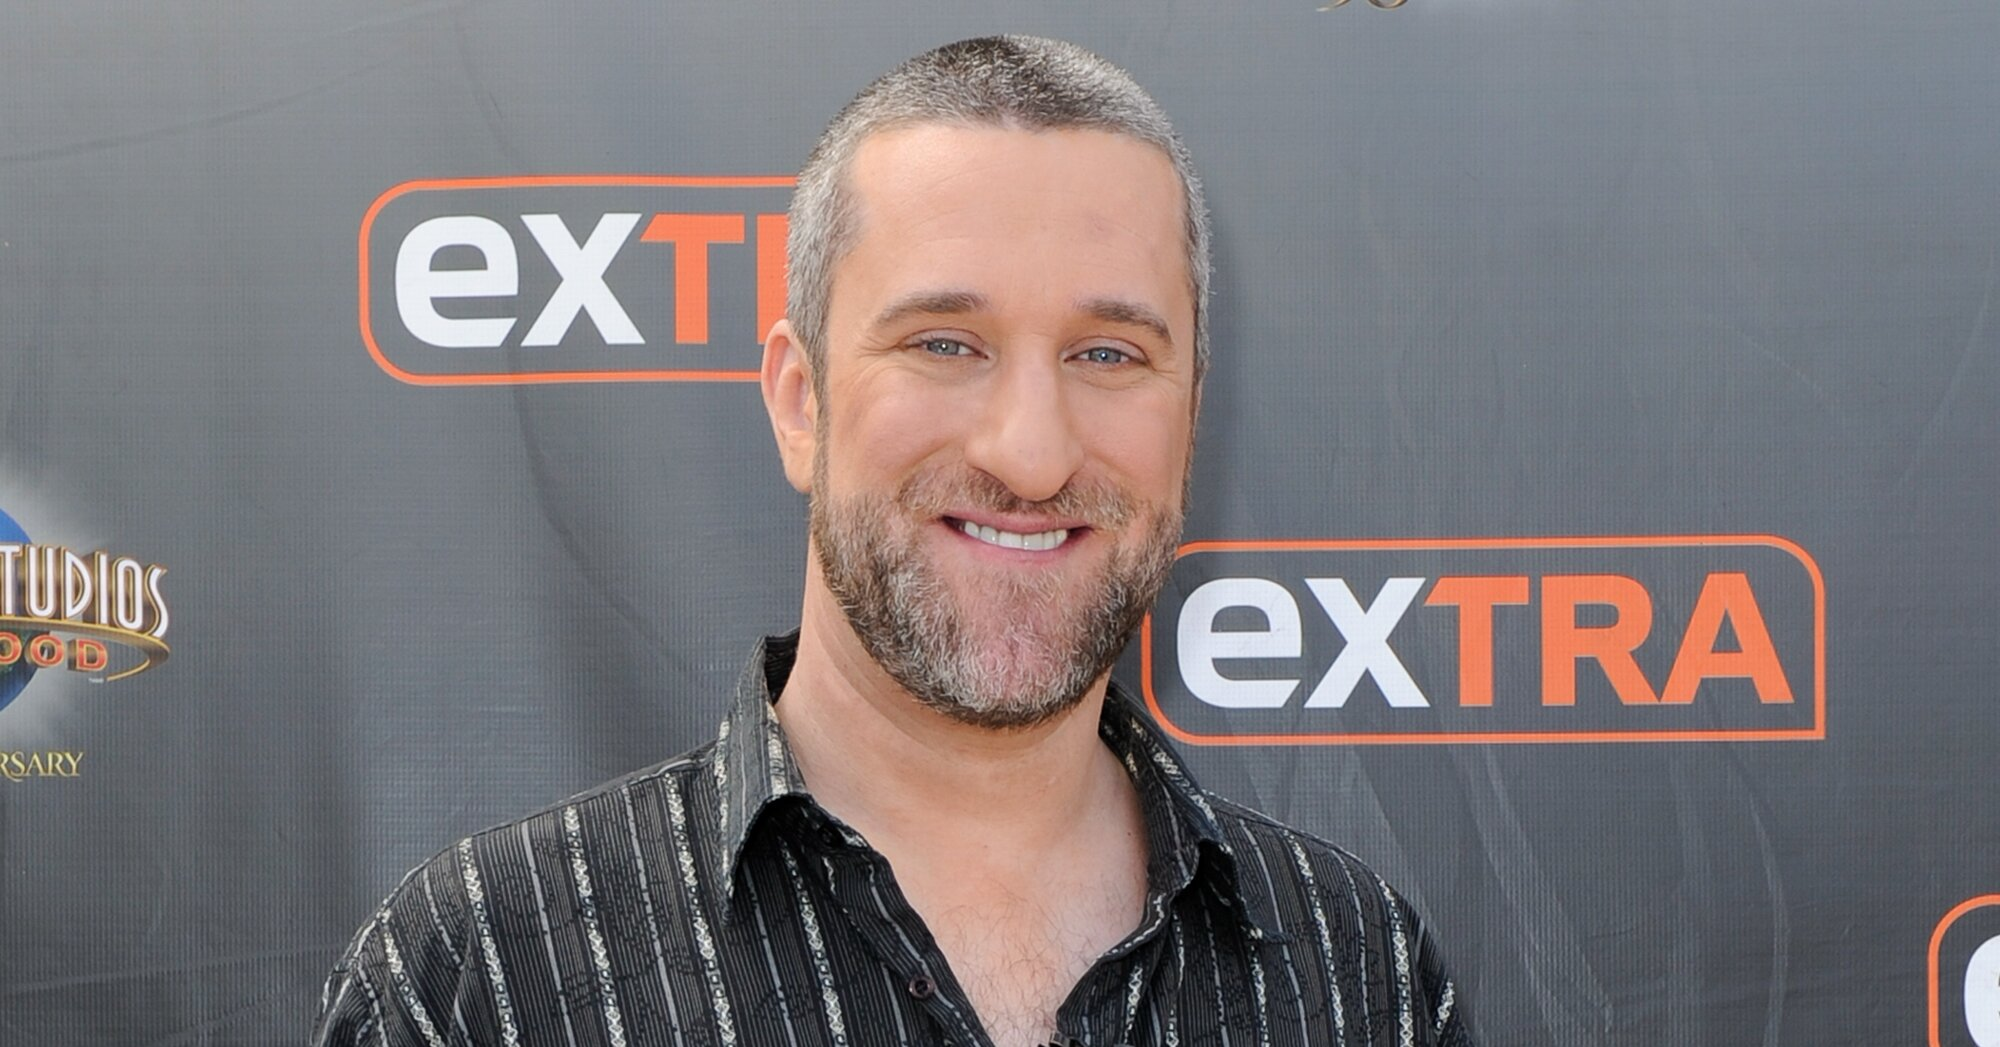 'Saved by the Bell' star Dustin Diamond diagnosed with stage 4 cancer undergoing chemo – Entertainment Weekly